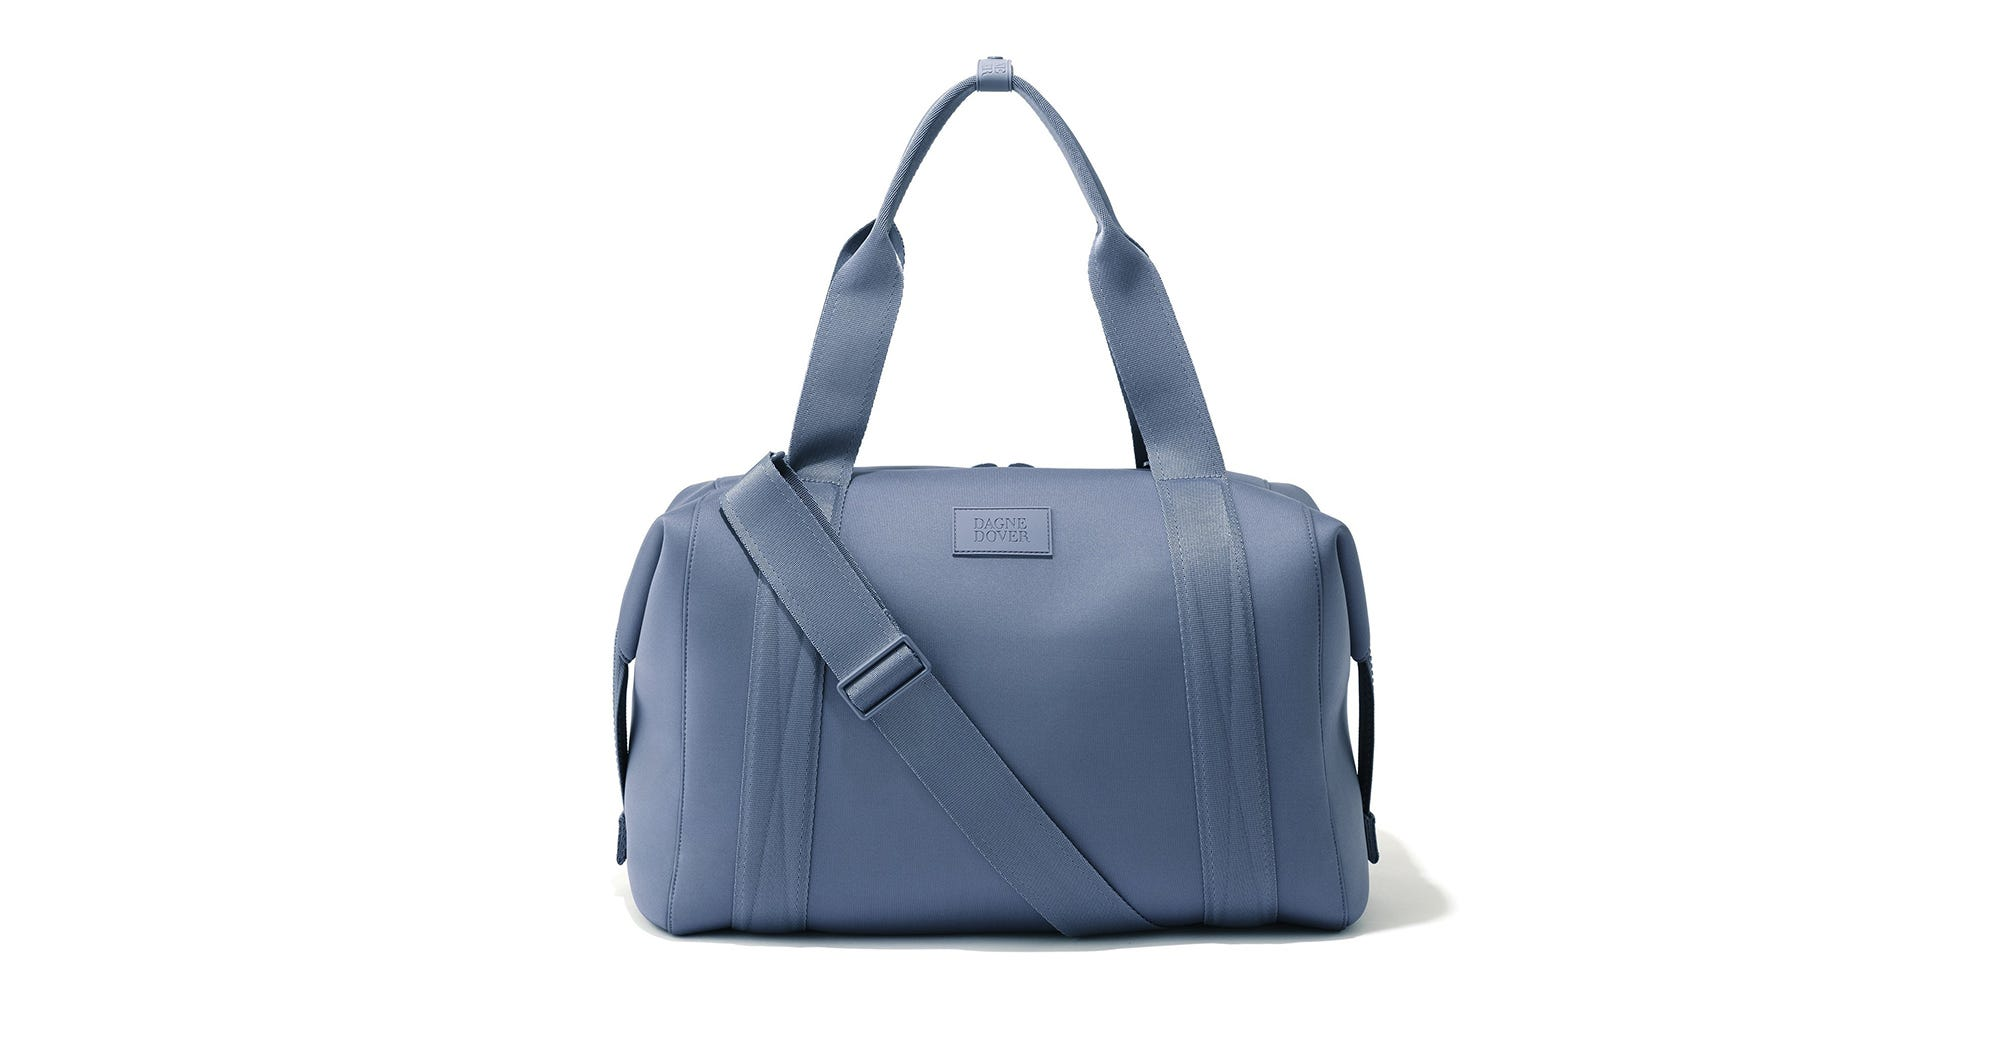 ad70de385d346 These Gym Bags Are As Stylish As You Are